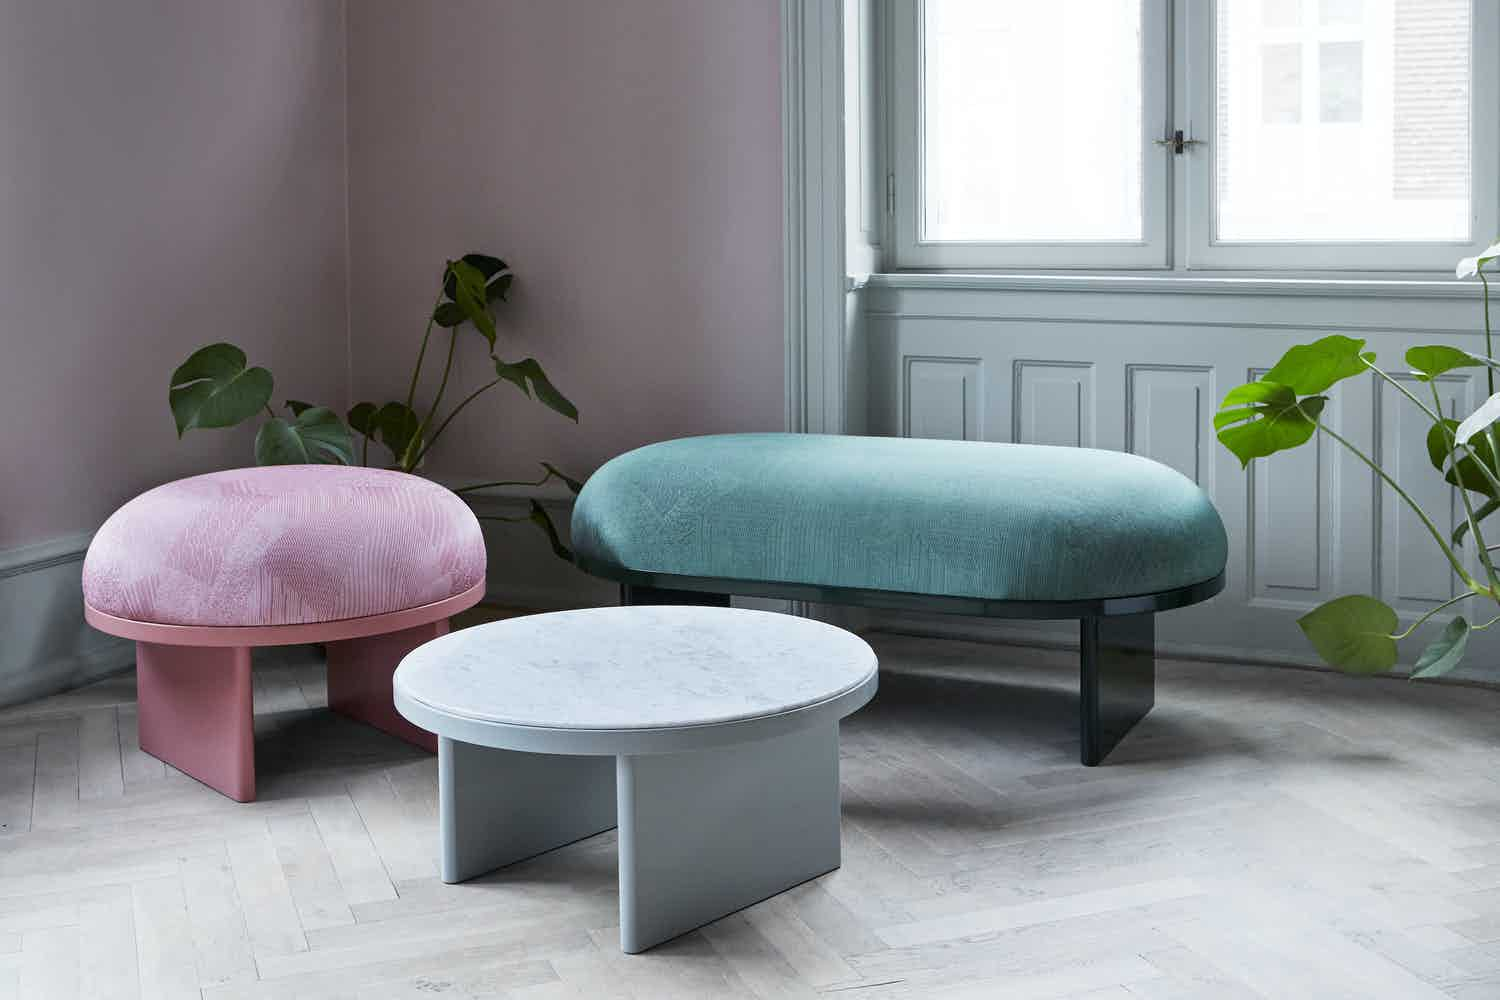 Pwtbs anza pouf family insitu haute living